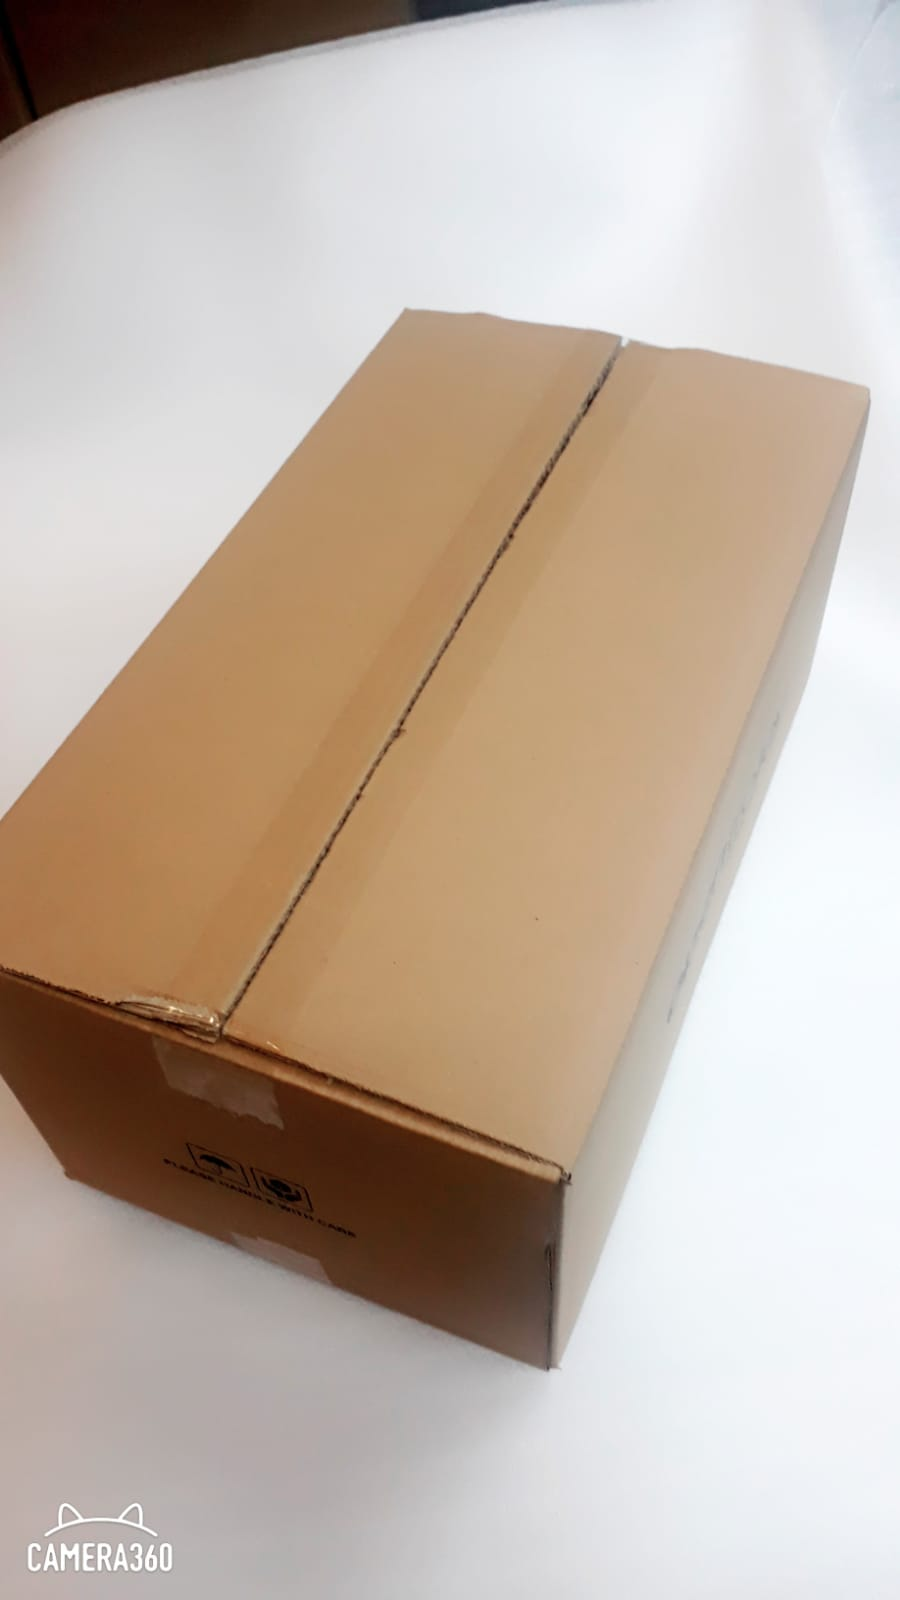 New Document Logo Printed Box